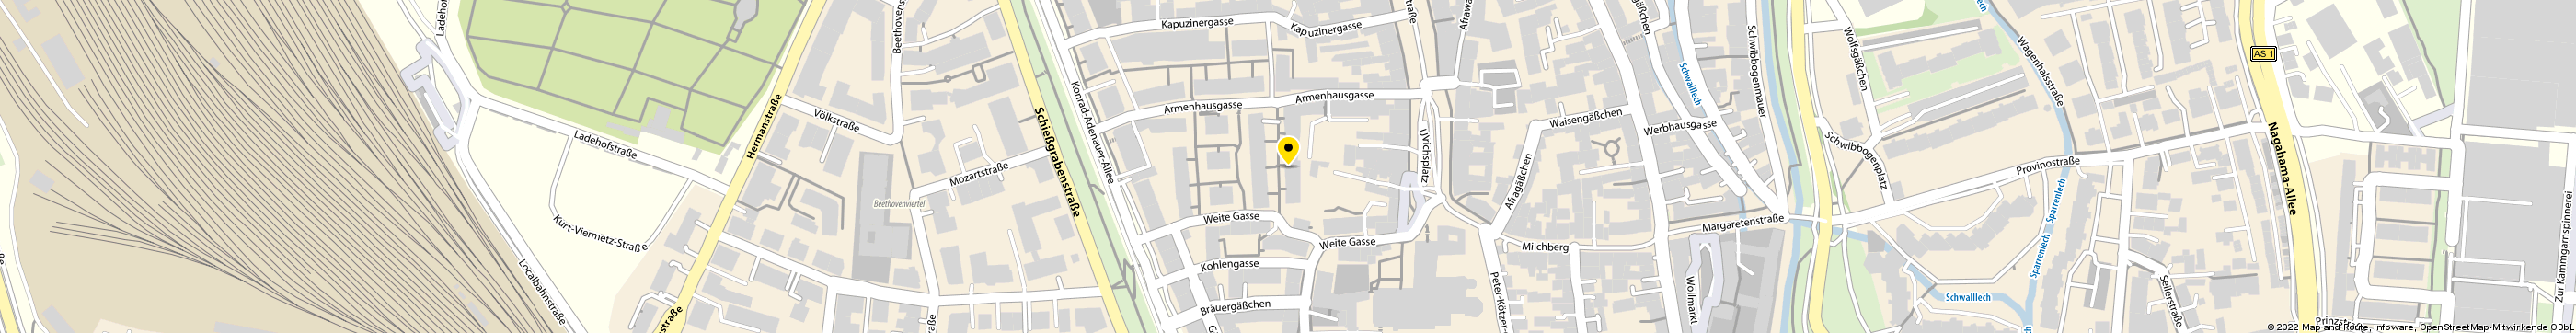 AGA INTERNATIONAL S.A. in Augsburg-Innenstadt Karte